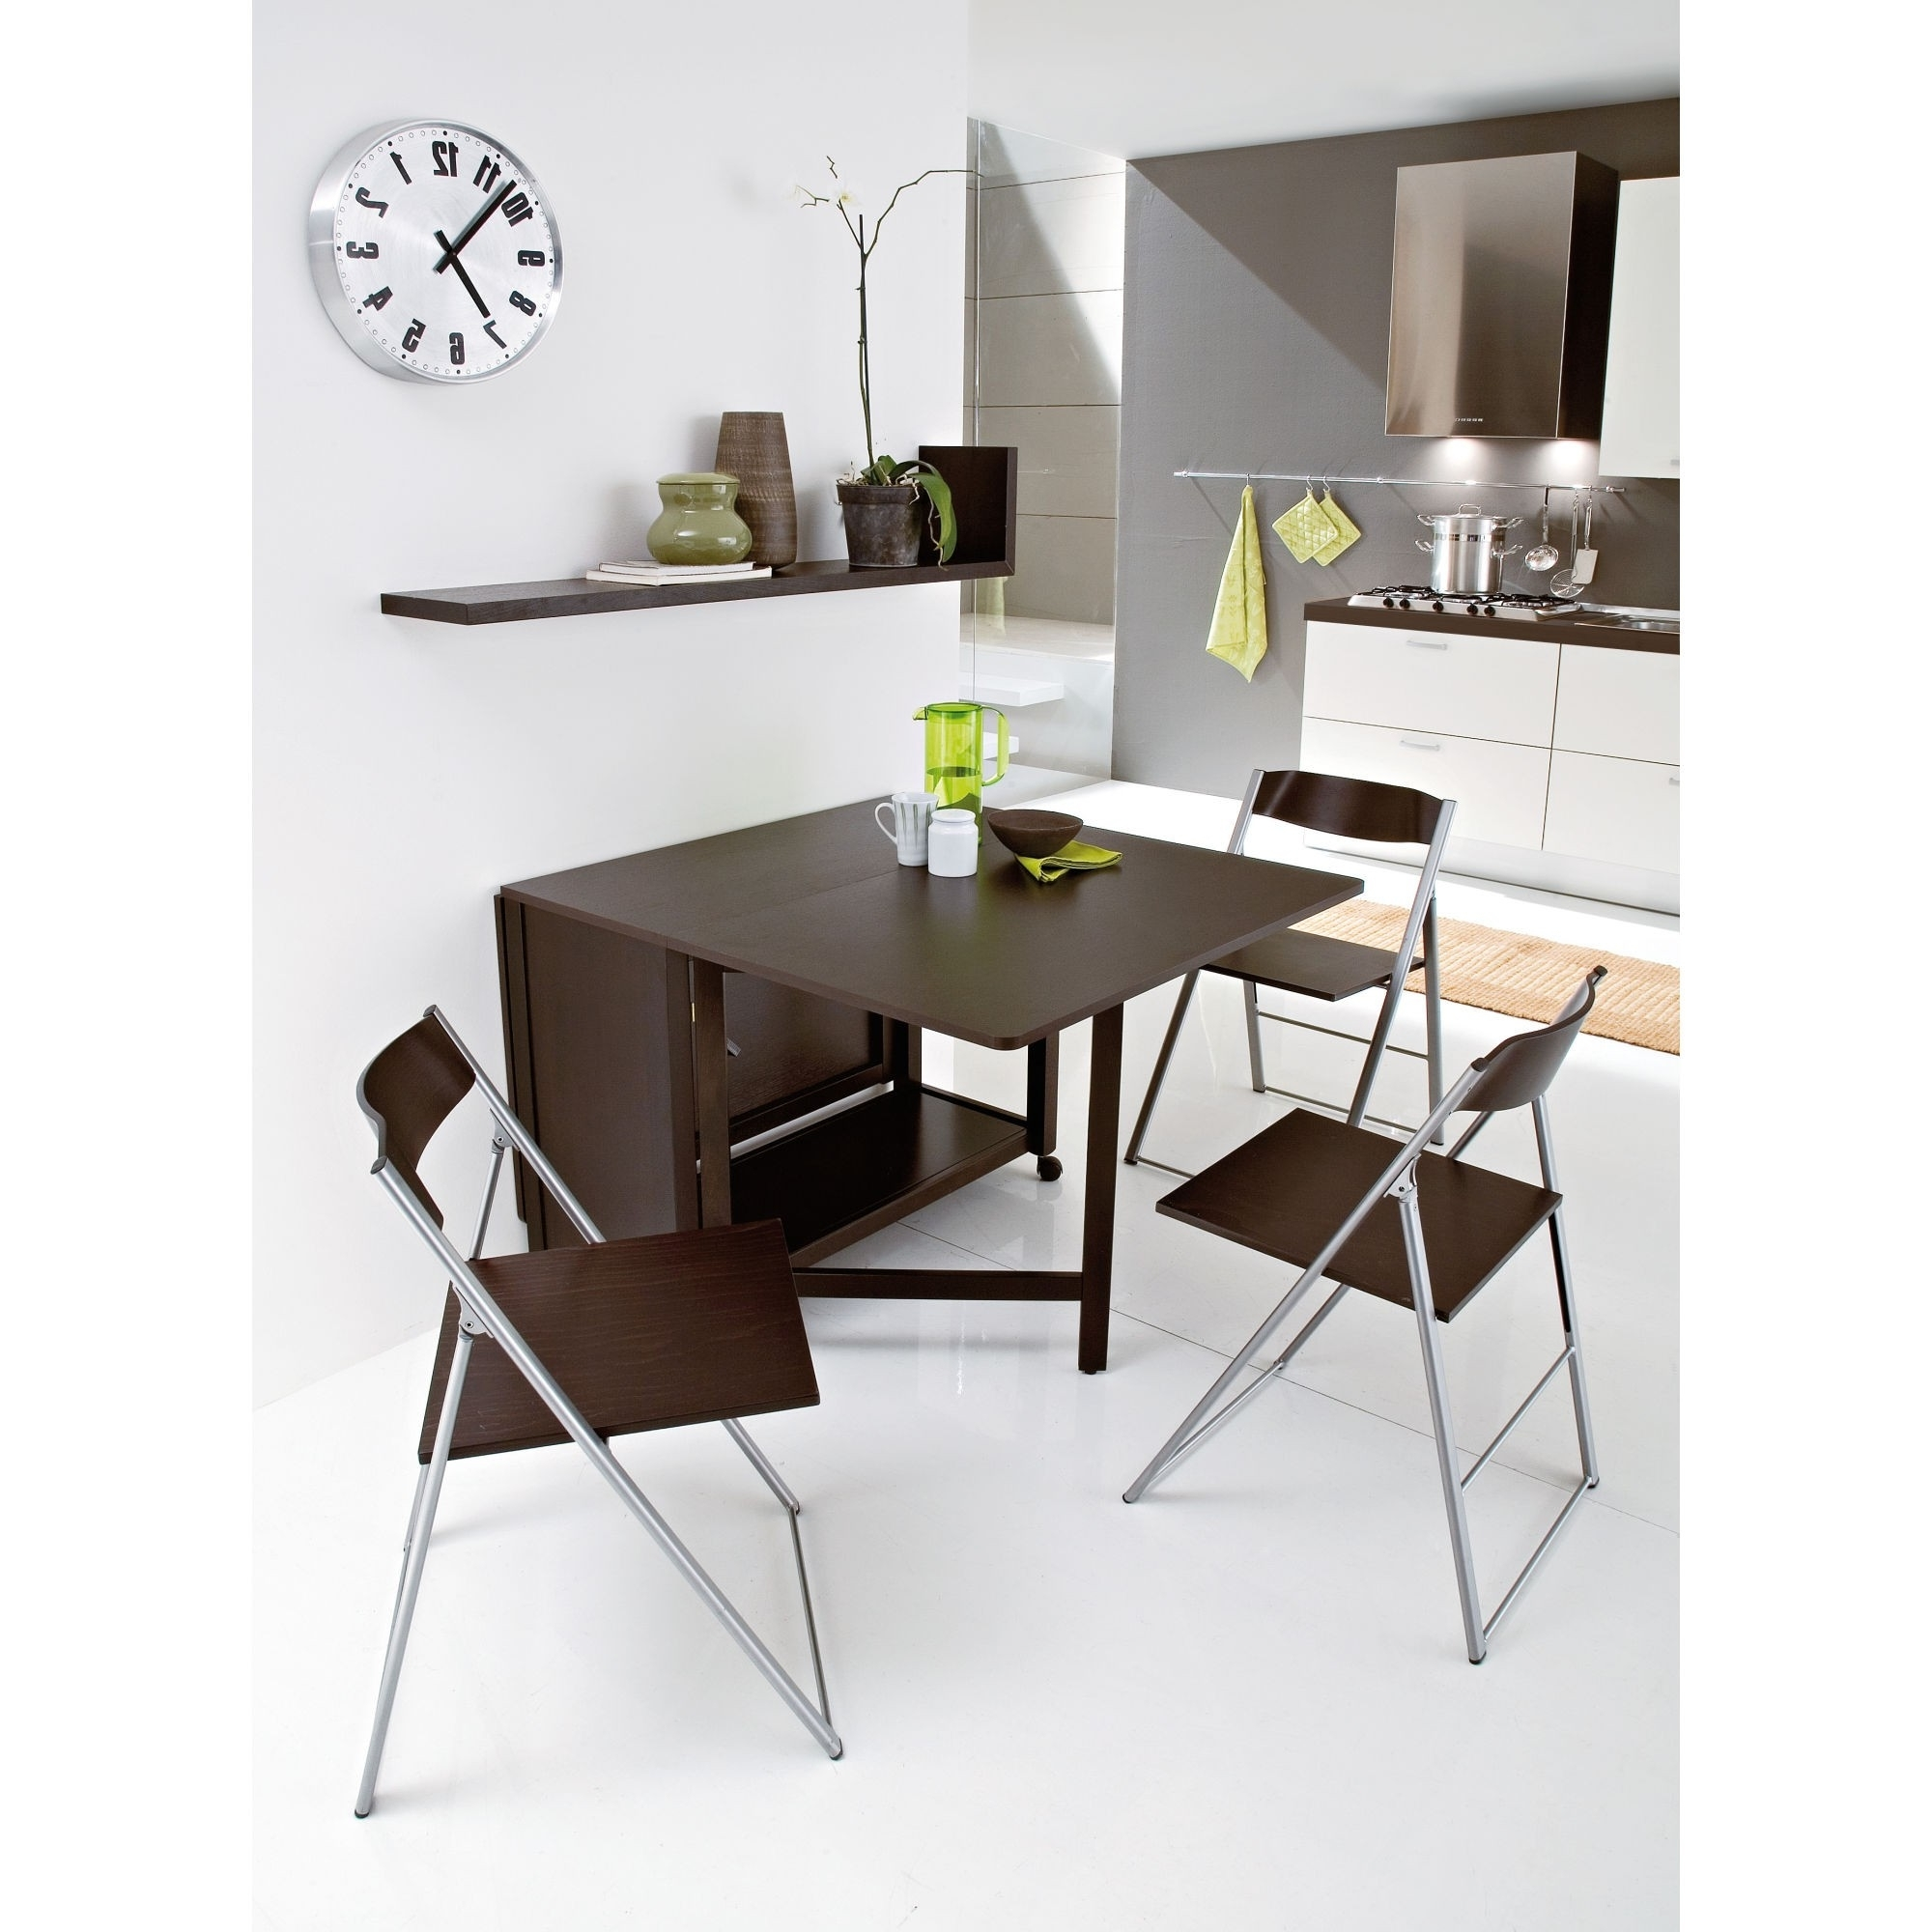 Folding Dining Table And Chairs Sets Intended For 2018 Modern Folding Wood And Metal Furniture For Dining Area (View 22 of 25)